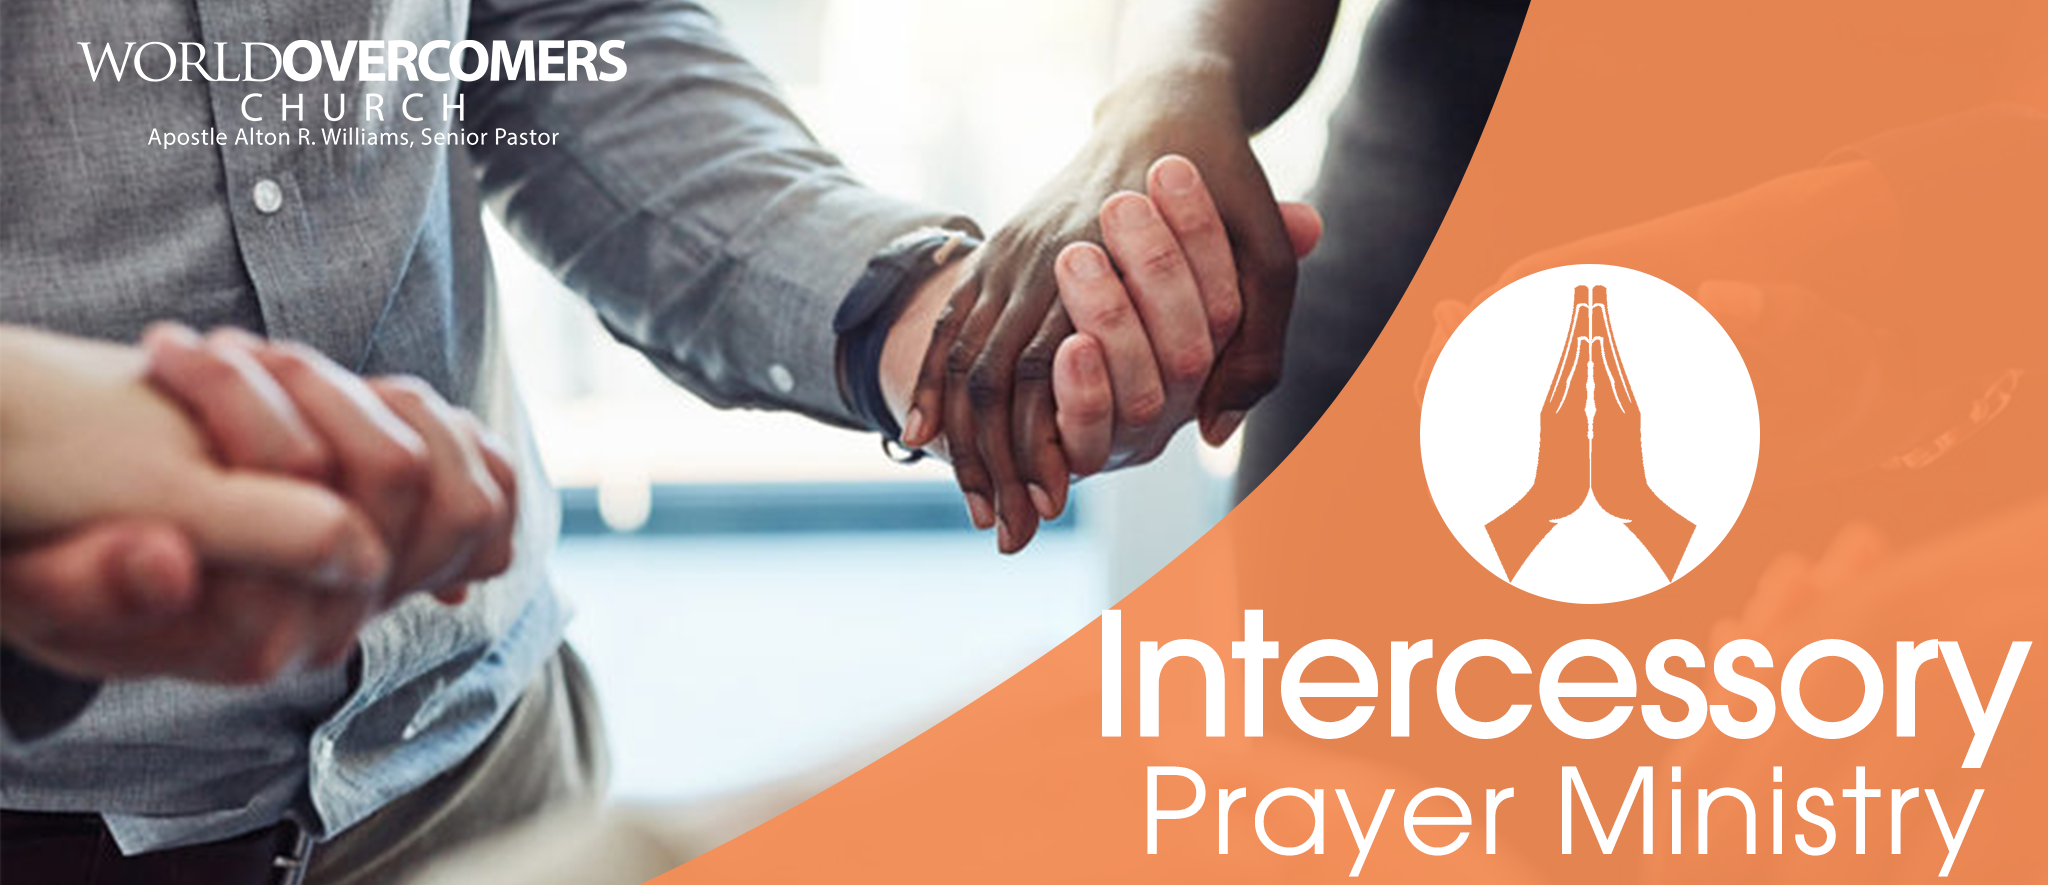 World Overcomers - Intercessory Prayer